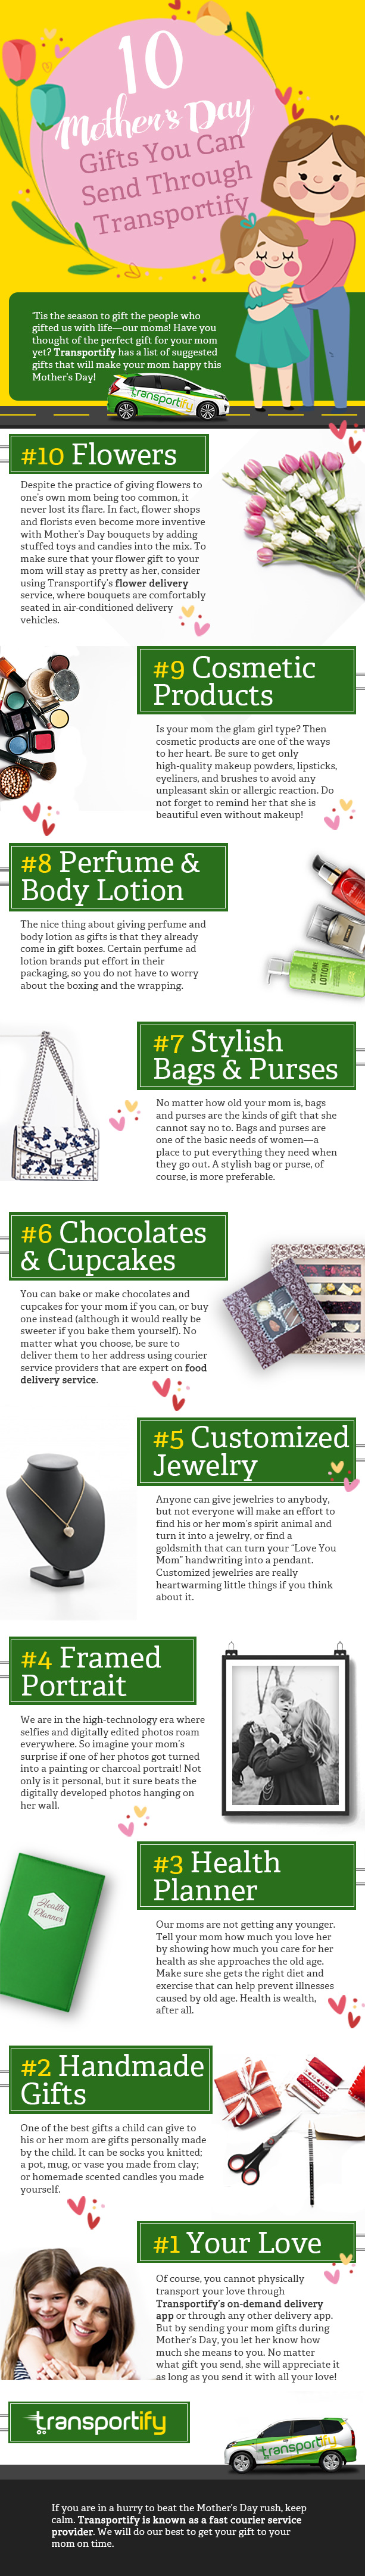 10-Mother's-Day-Gift-You-Can-Send-Through-Transportify- Infographics V2